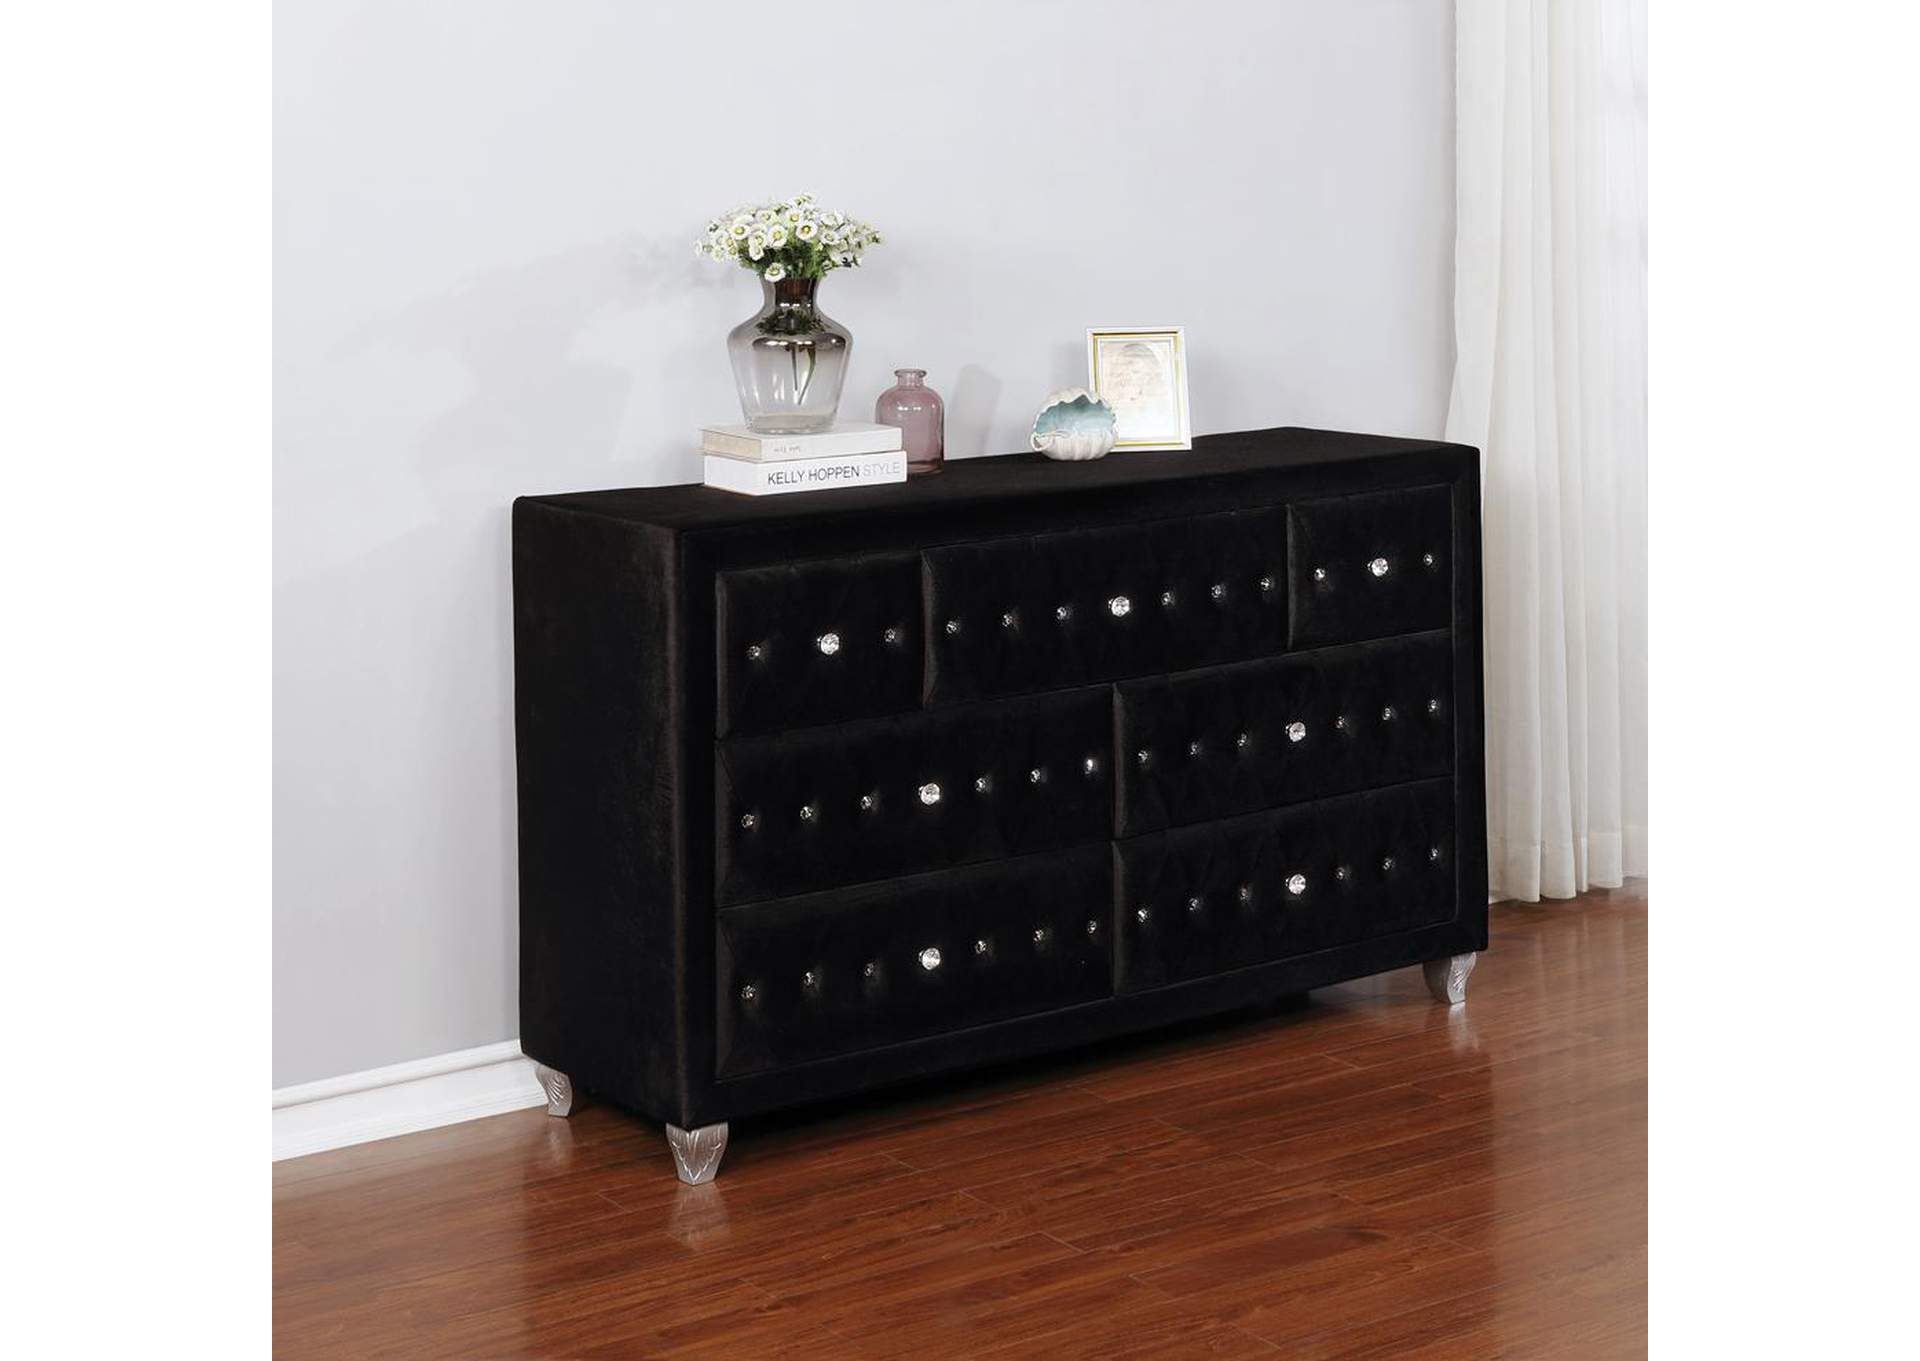 Deanna Metallic Black Dresser,Coaster Furniture